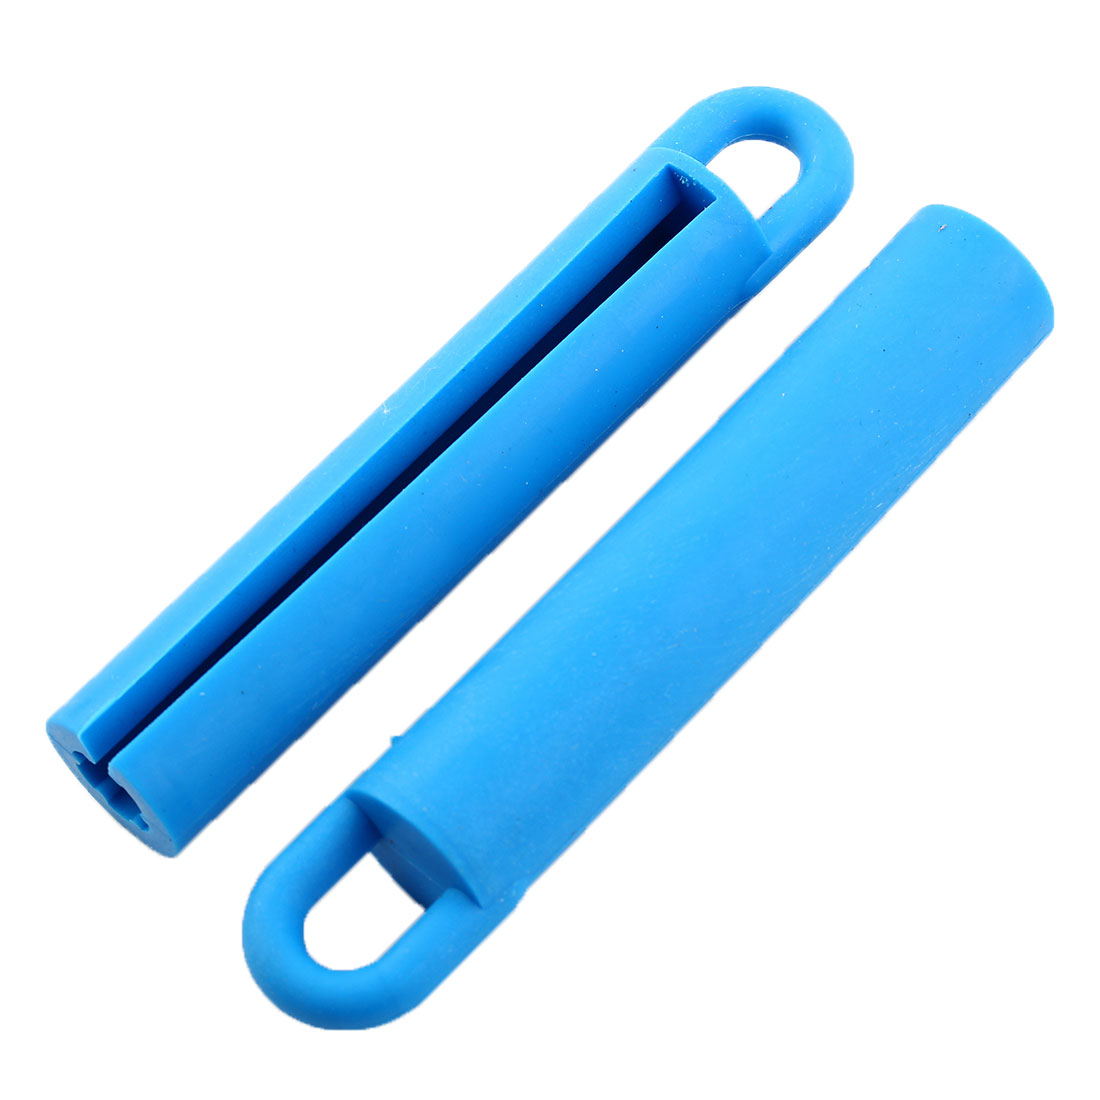 Rubber Billiard Cue Stick Hanger Rod Straightening Wall Mount Holder Blue 3 Pcs - image 1 of 4